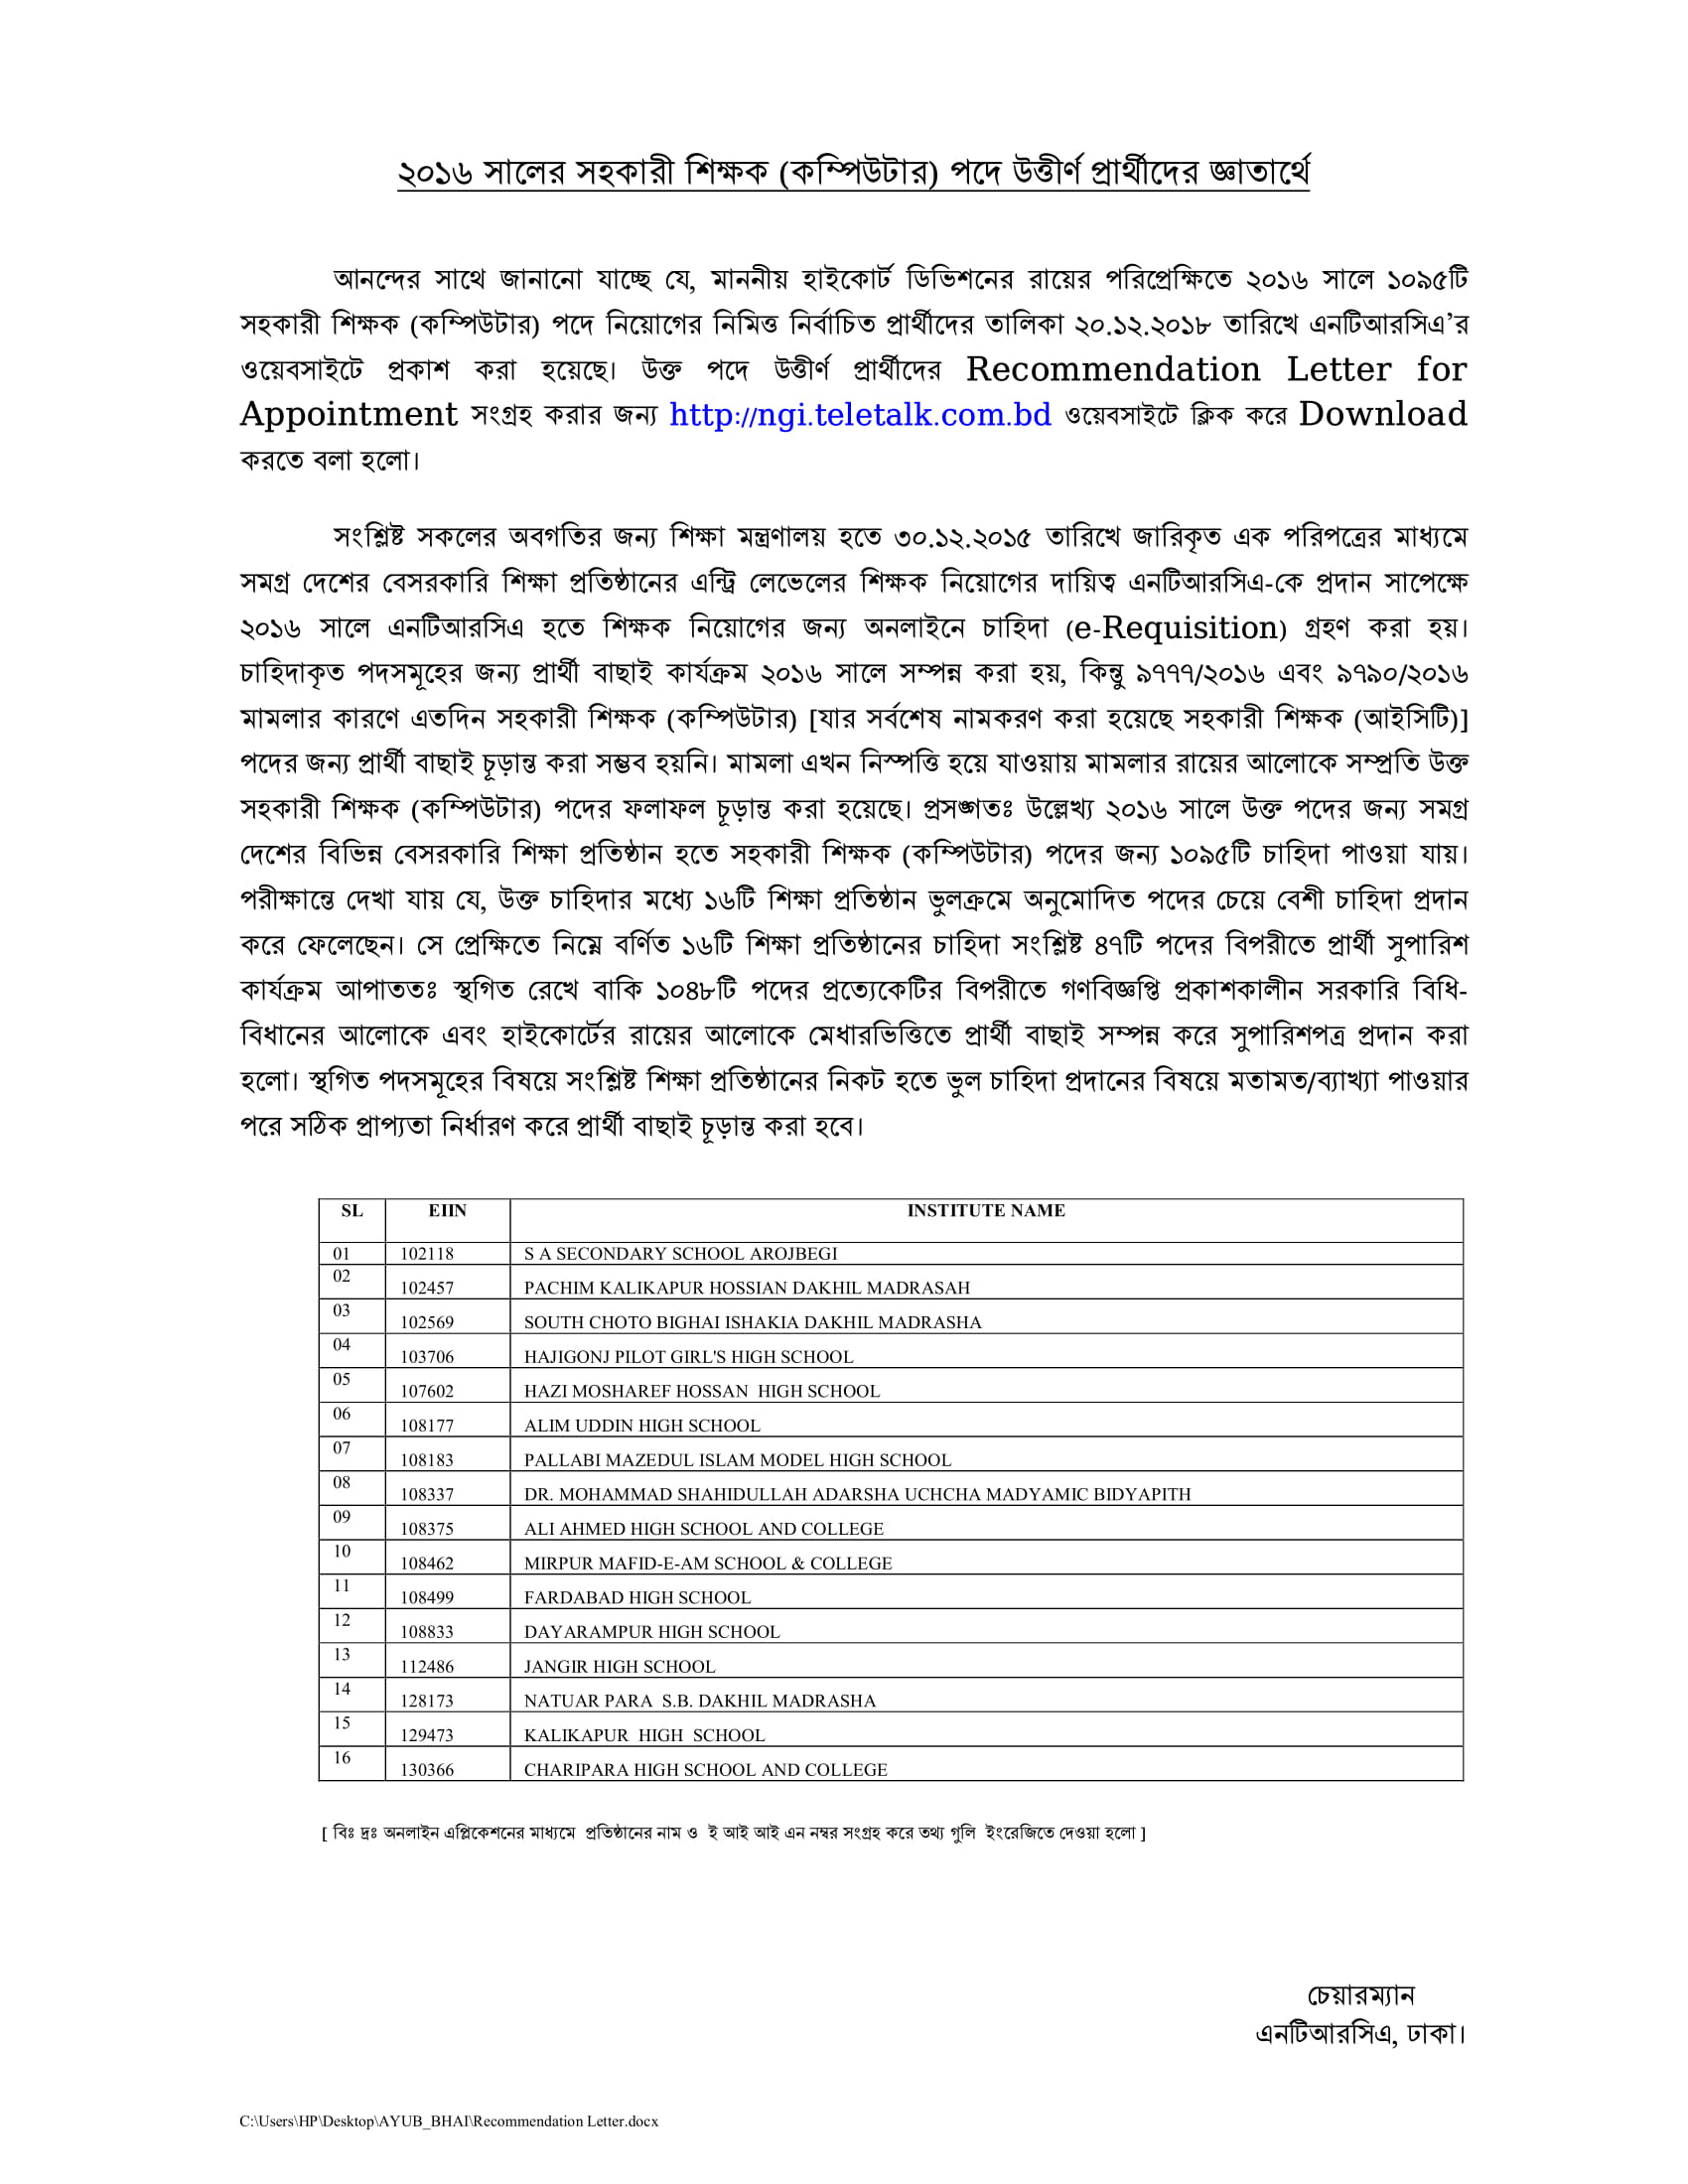 NTRCA 1st to 14th E-Application Result 2019